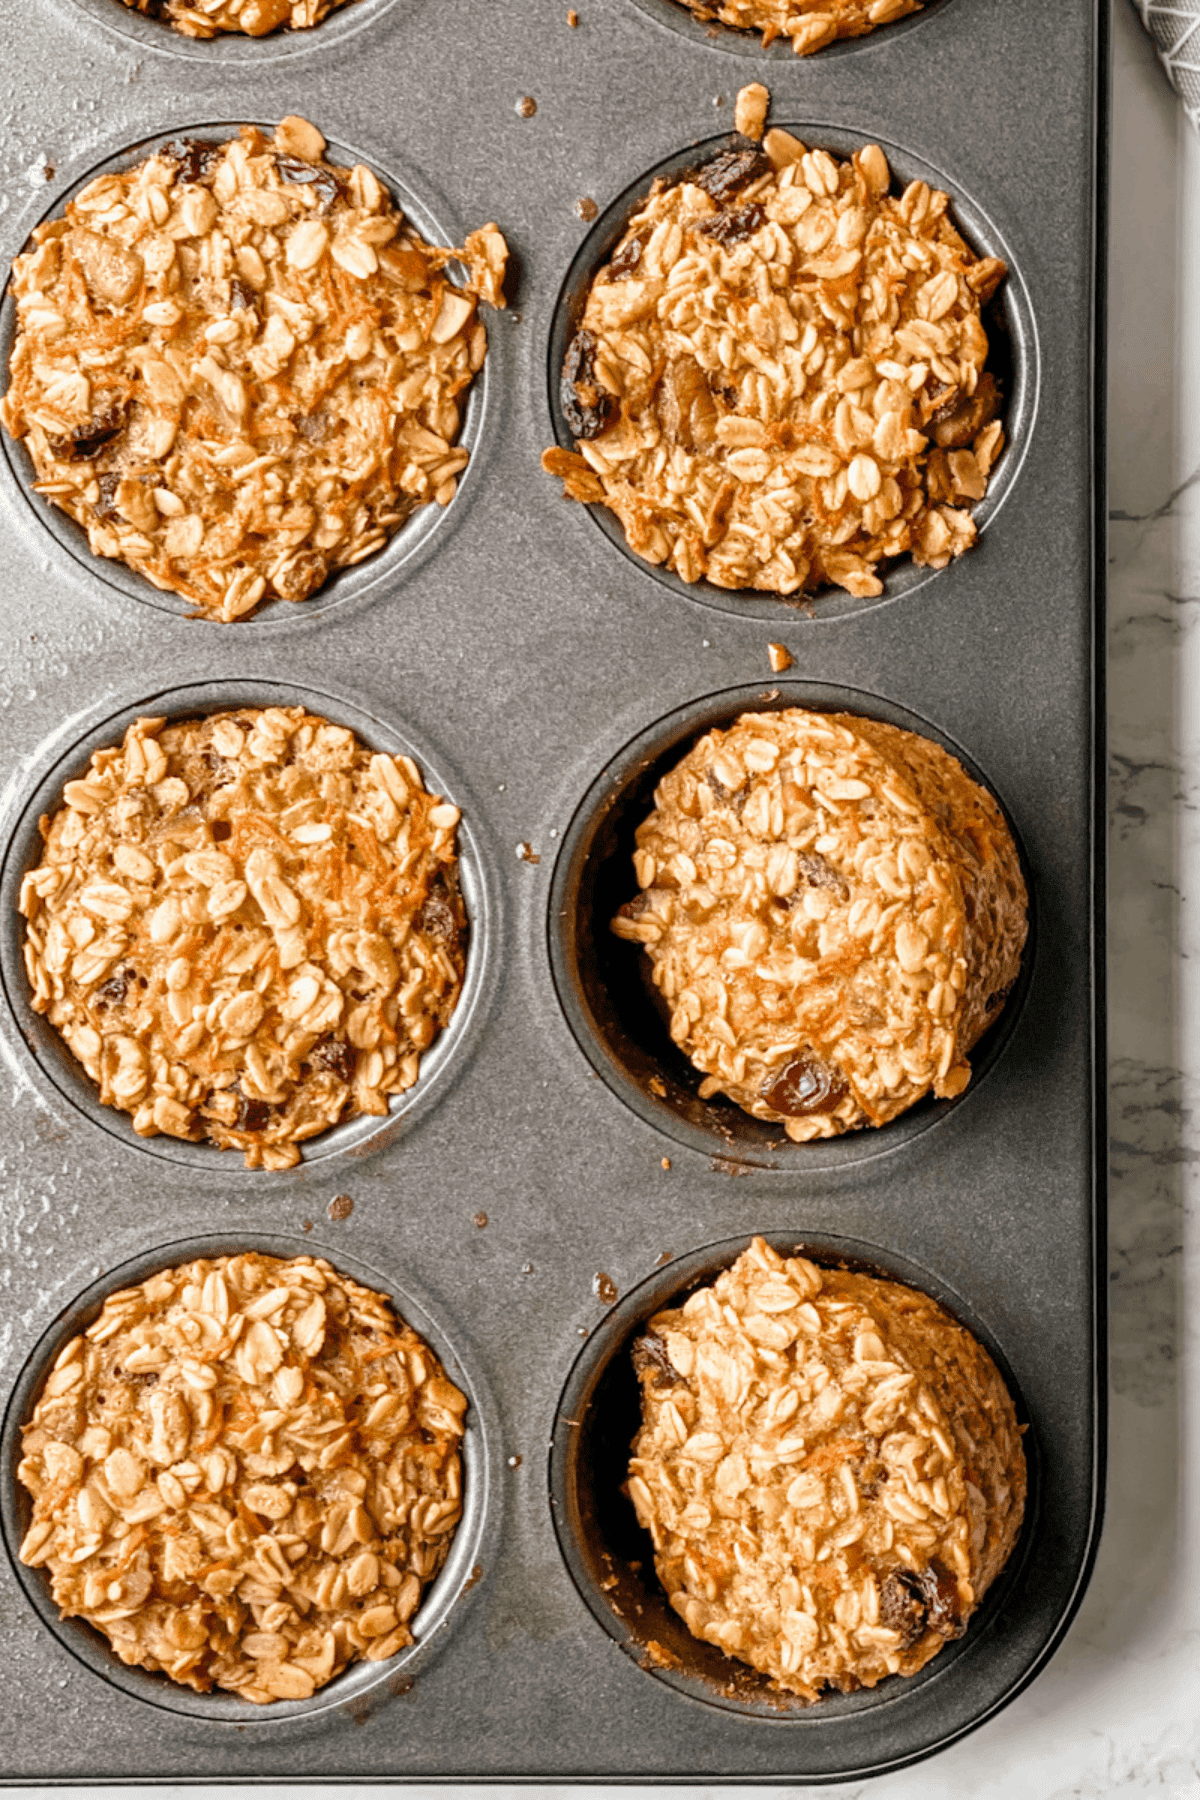 baked oatmeal cups in a muffin pan.